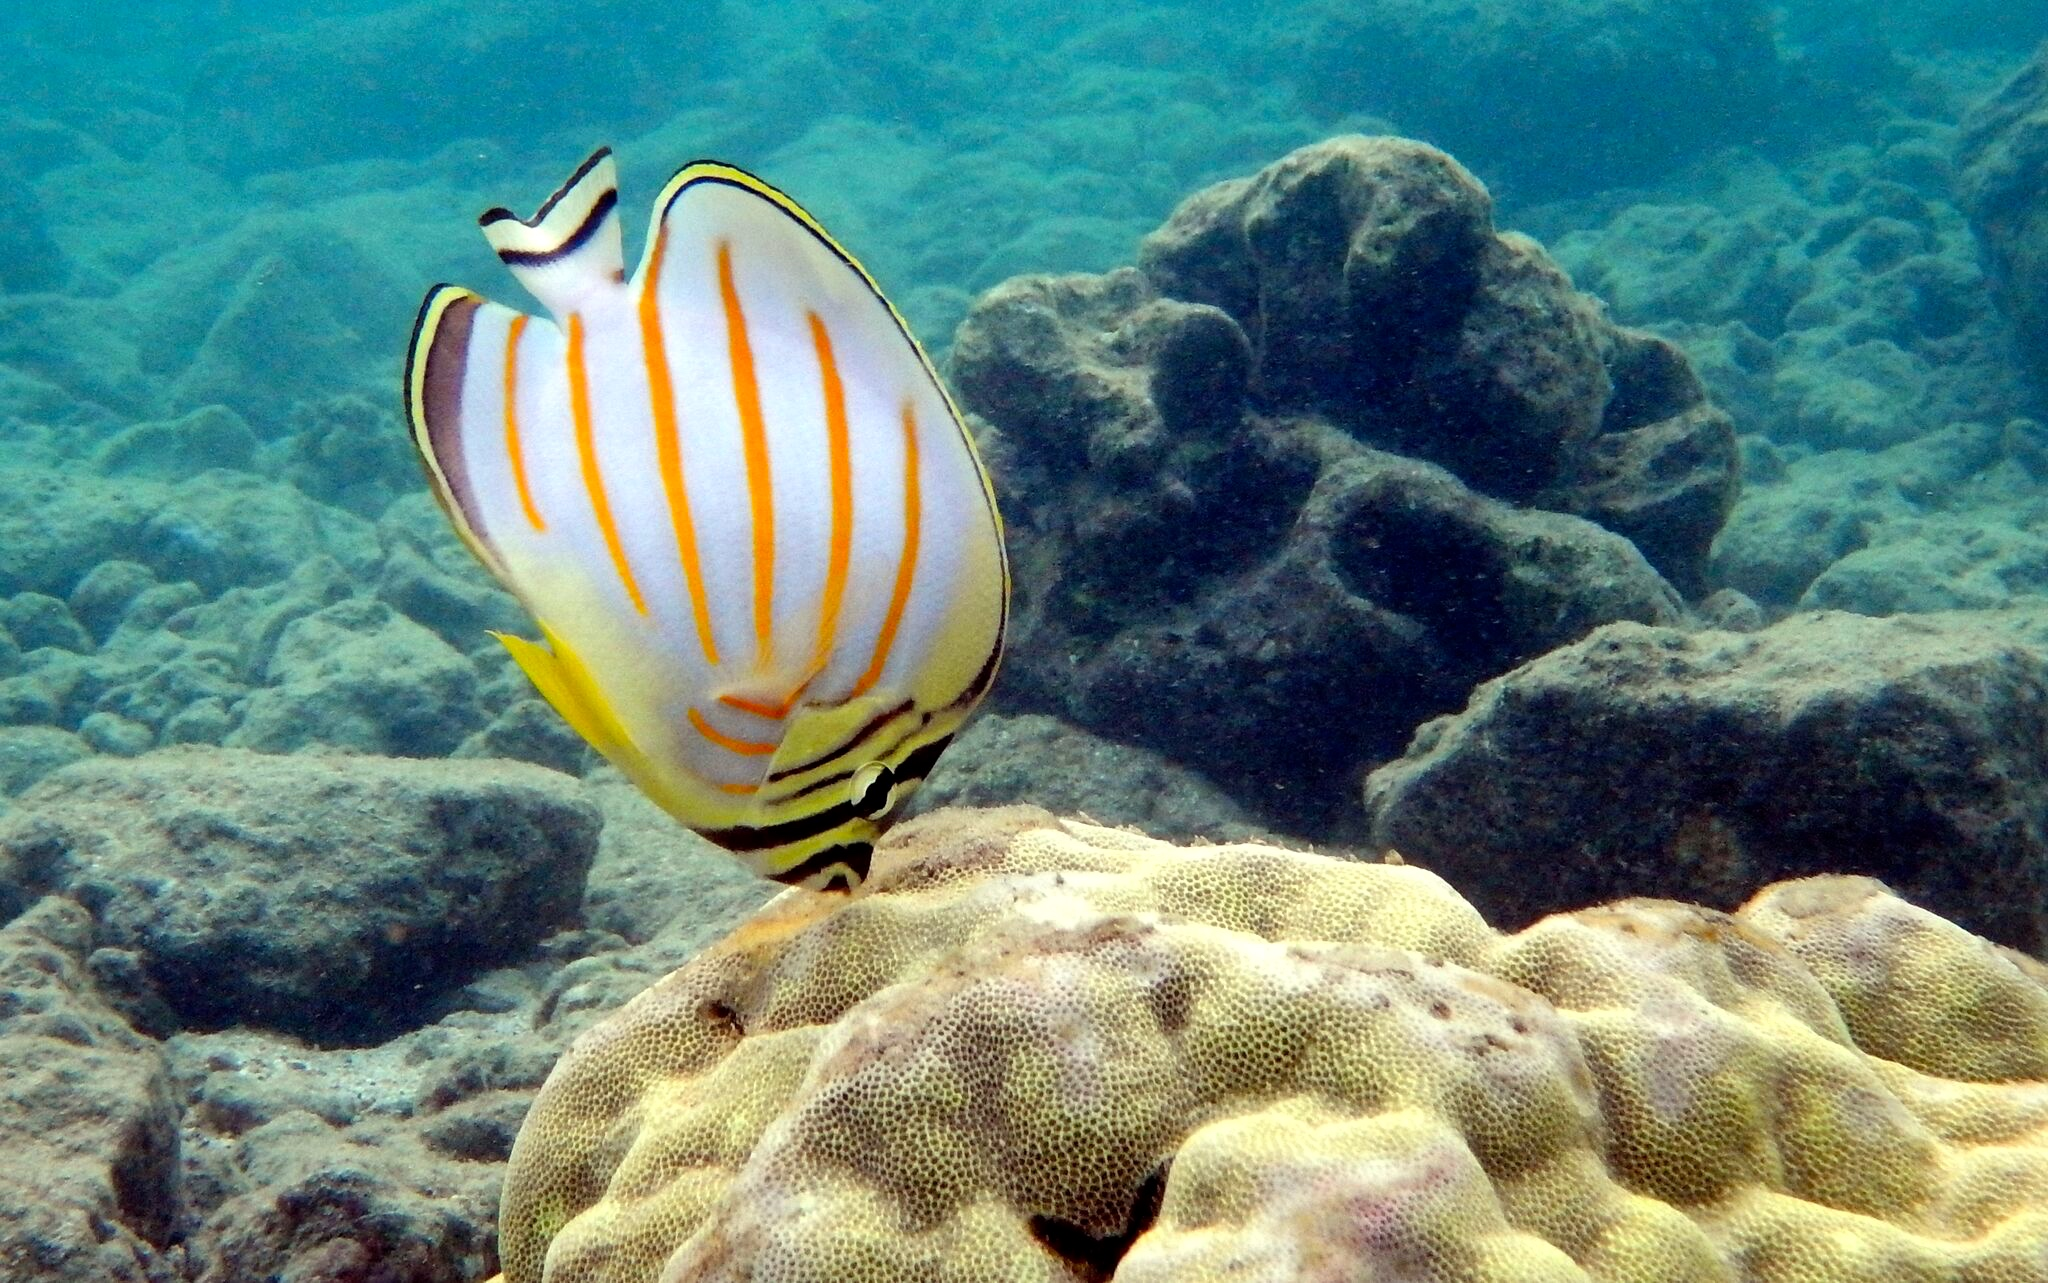 161013_Ornate Butterflyfish kīkākapu Hanauma Bay2